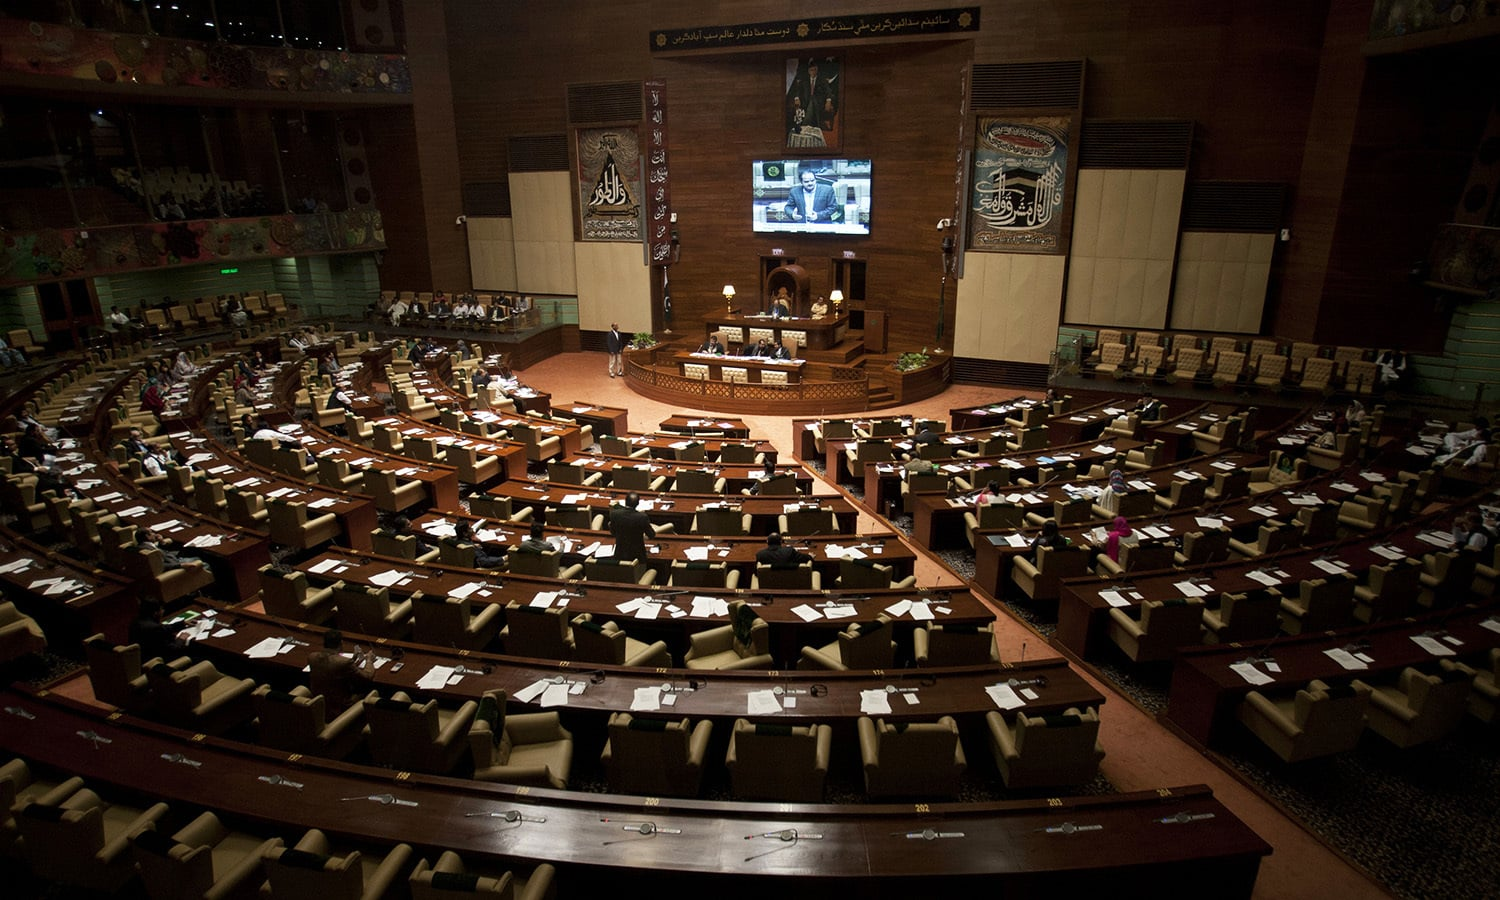 In this photo taken on Jan 27, 2016, Pakistan's provincial assembly in session in Karachi, Pakistan.—AP